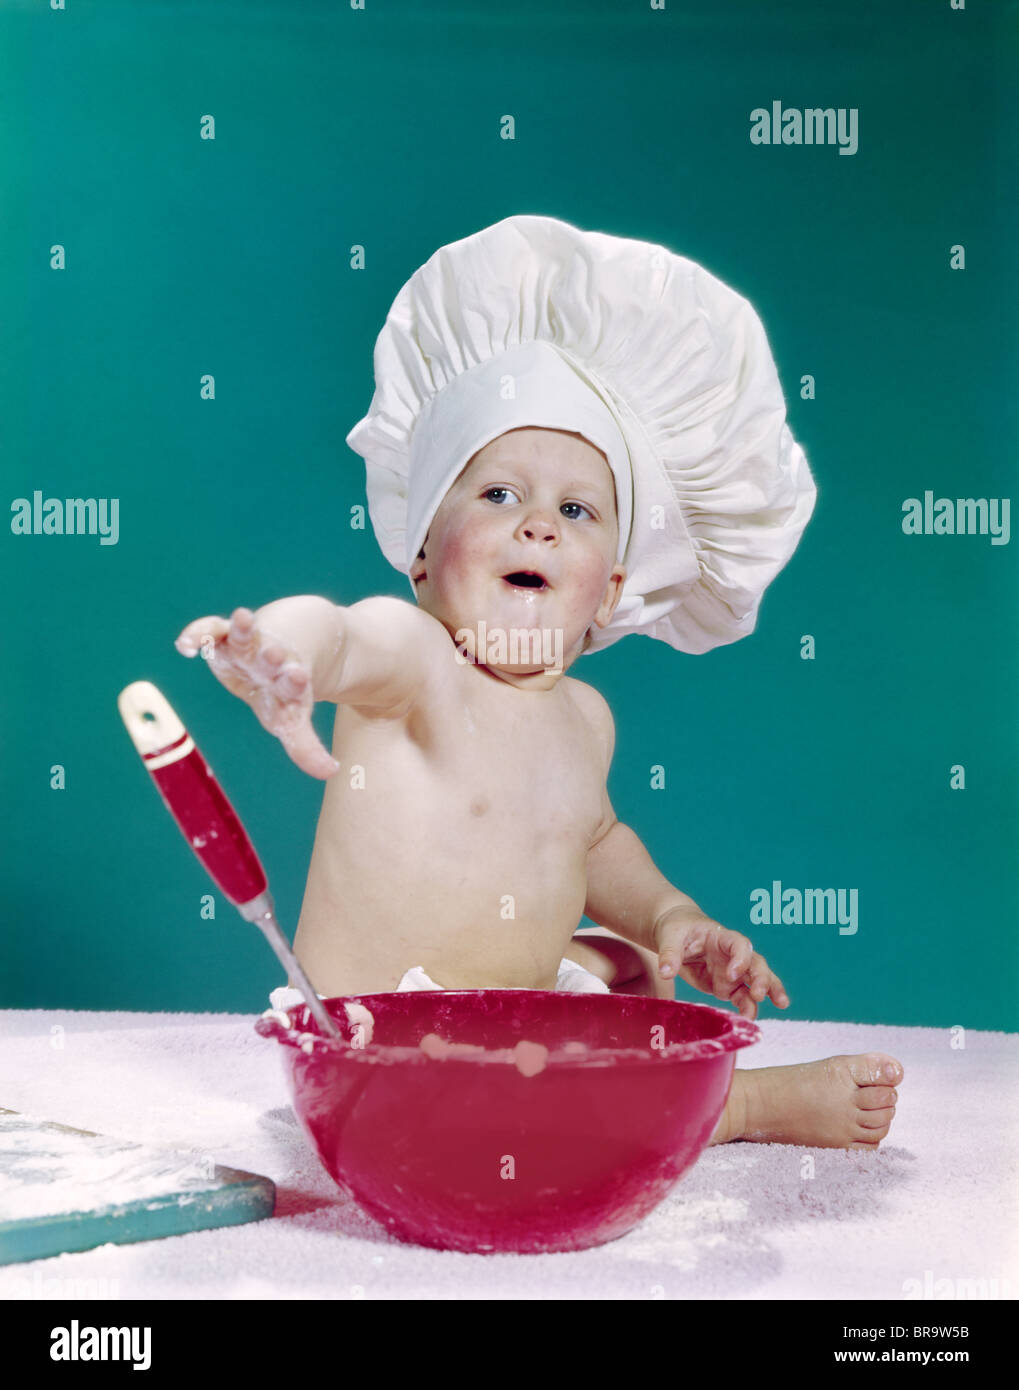 96ff3de79ac 1960s BABY WEARING CHEF HAT WITH RED MIXING BOWL AND SPOON FUNNY FACIAL  EXPRESSION